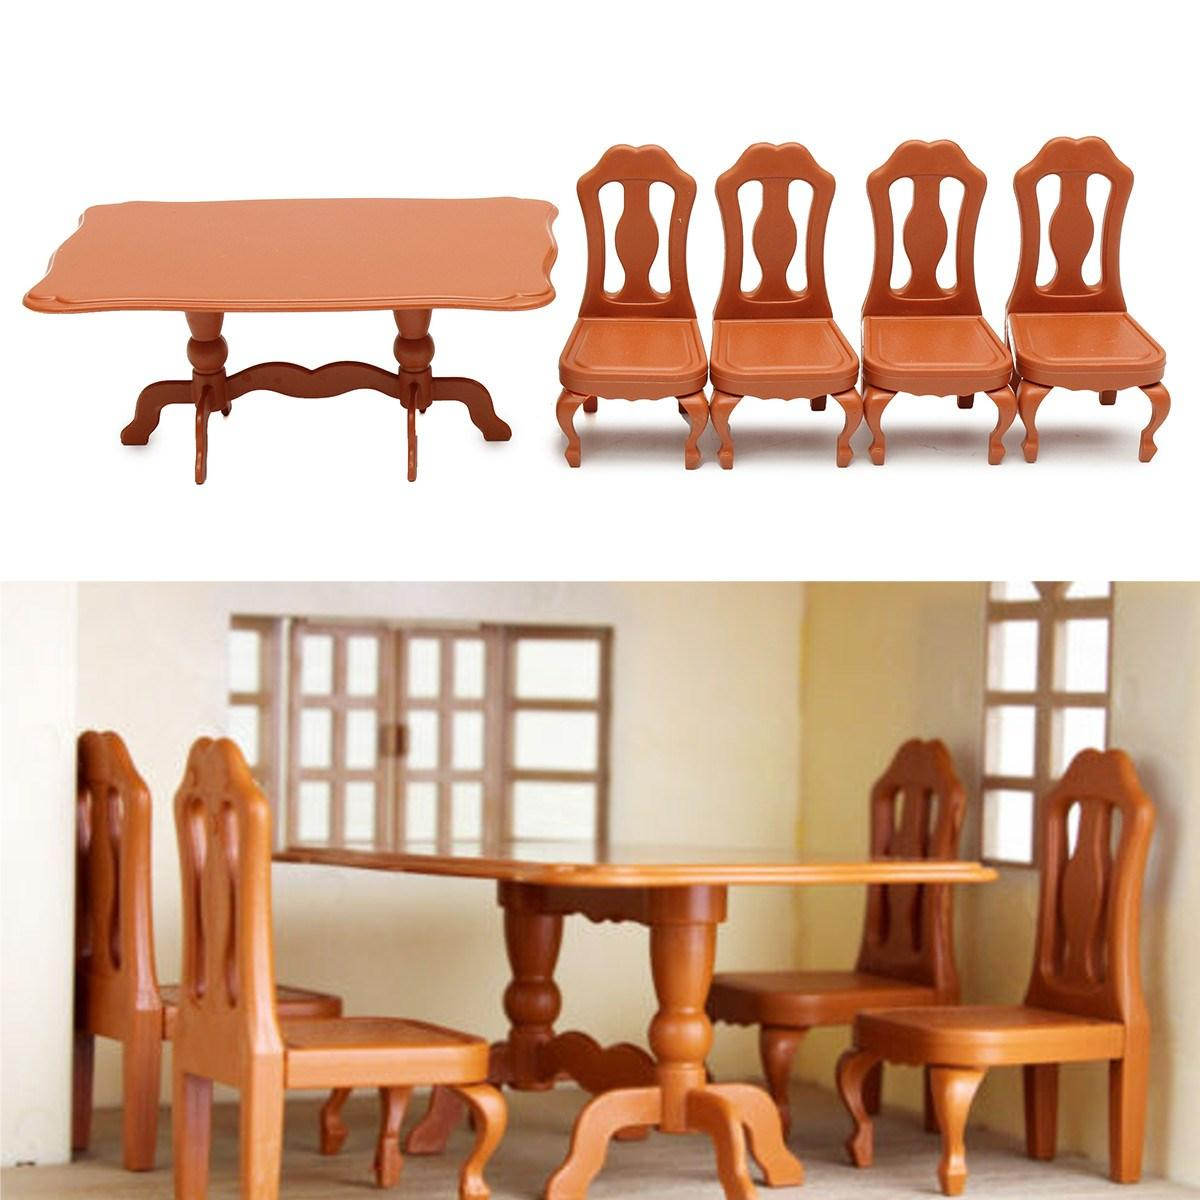 DIY Miniatura Furniture Dining Tables Chairs Sets For Mini Doll House  Miniatures Furniture Toys Gifts For Children Adult Le Toy Van Dolls House  Dollhouse ...